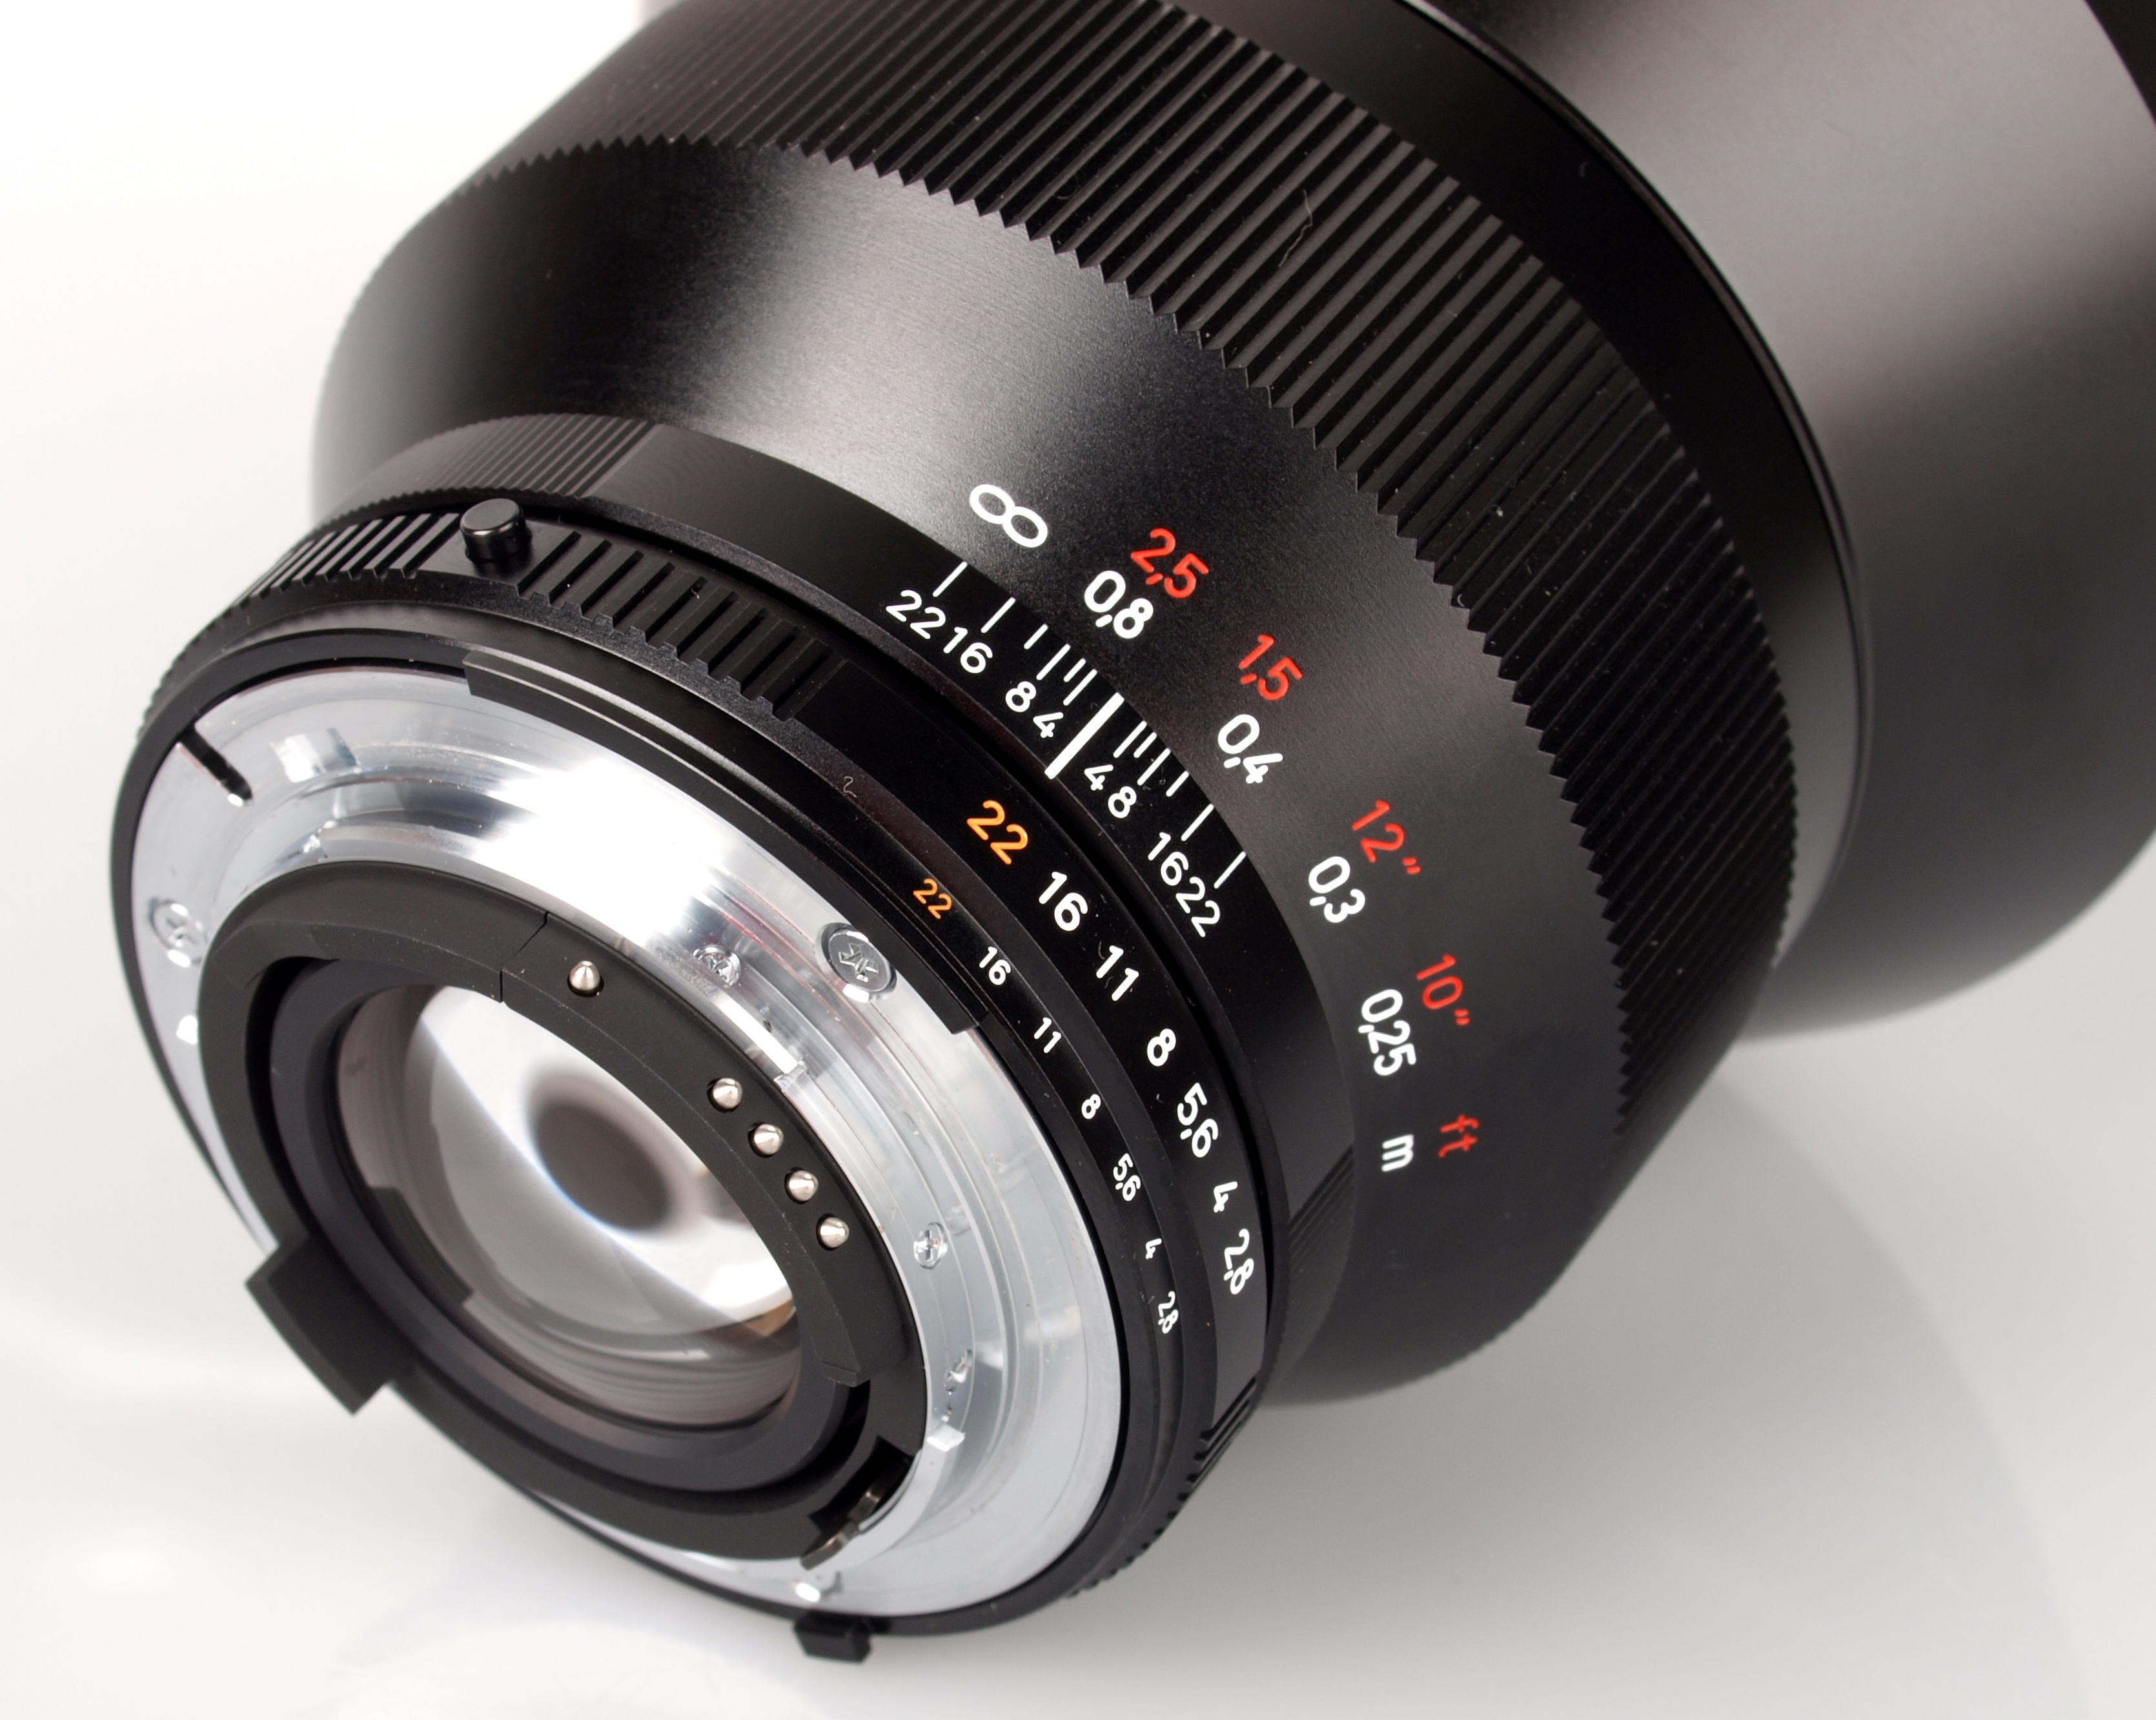 Zeiss Distagon T* 15mm f/2.8 ZF.2 (FX) - Review / Test Report